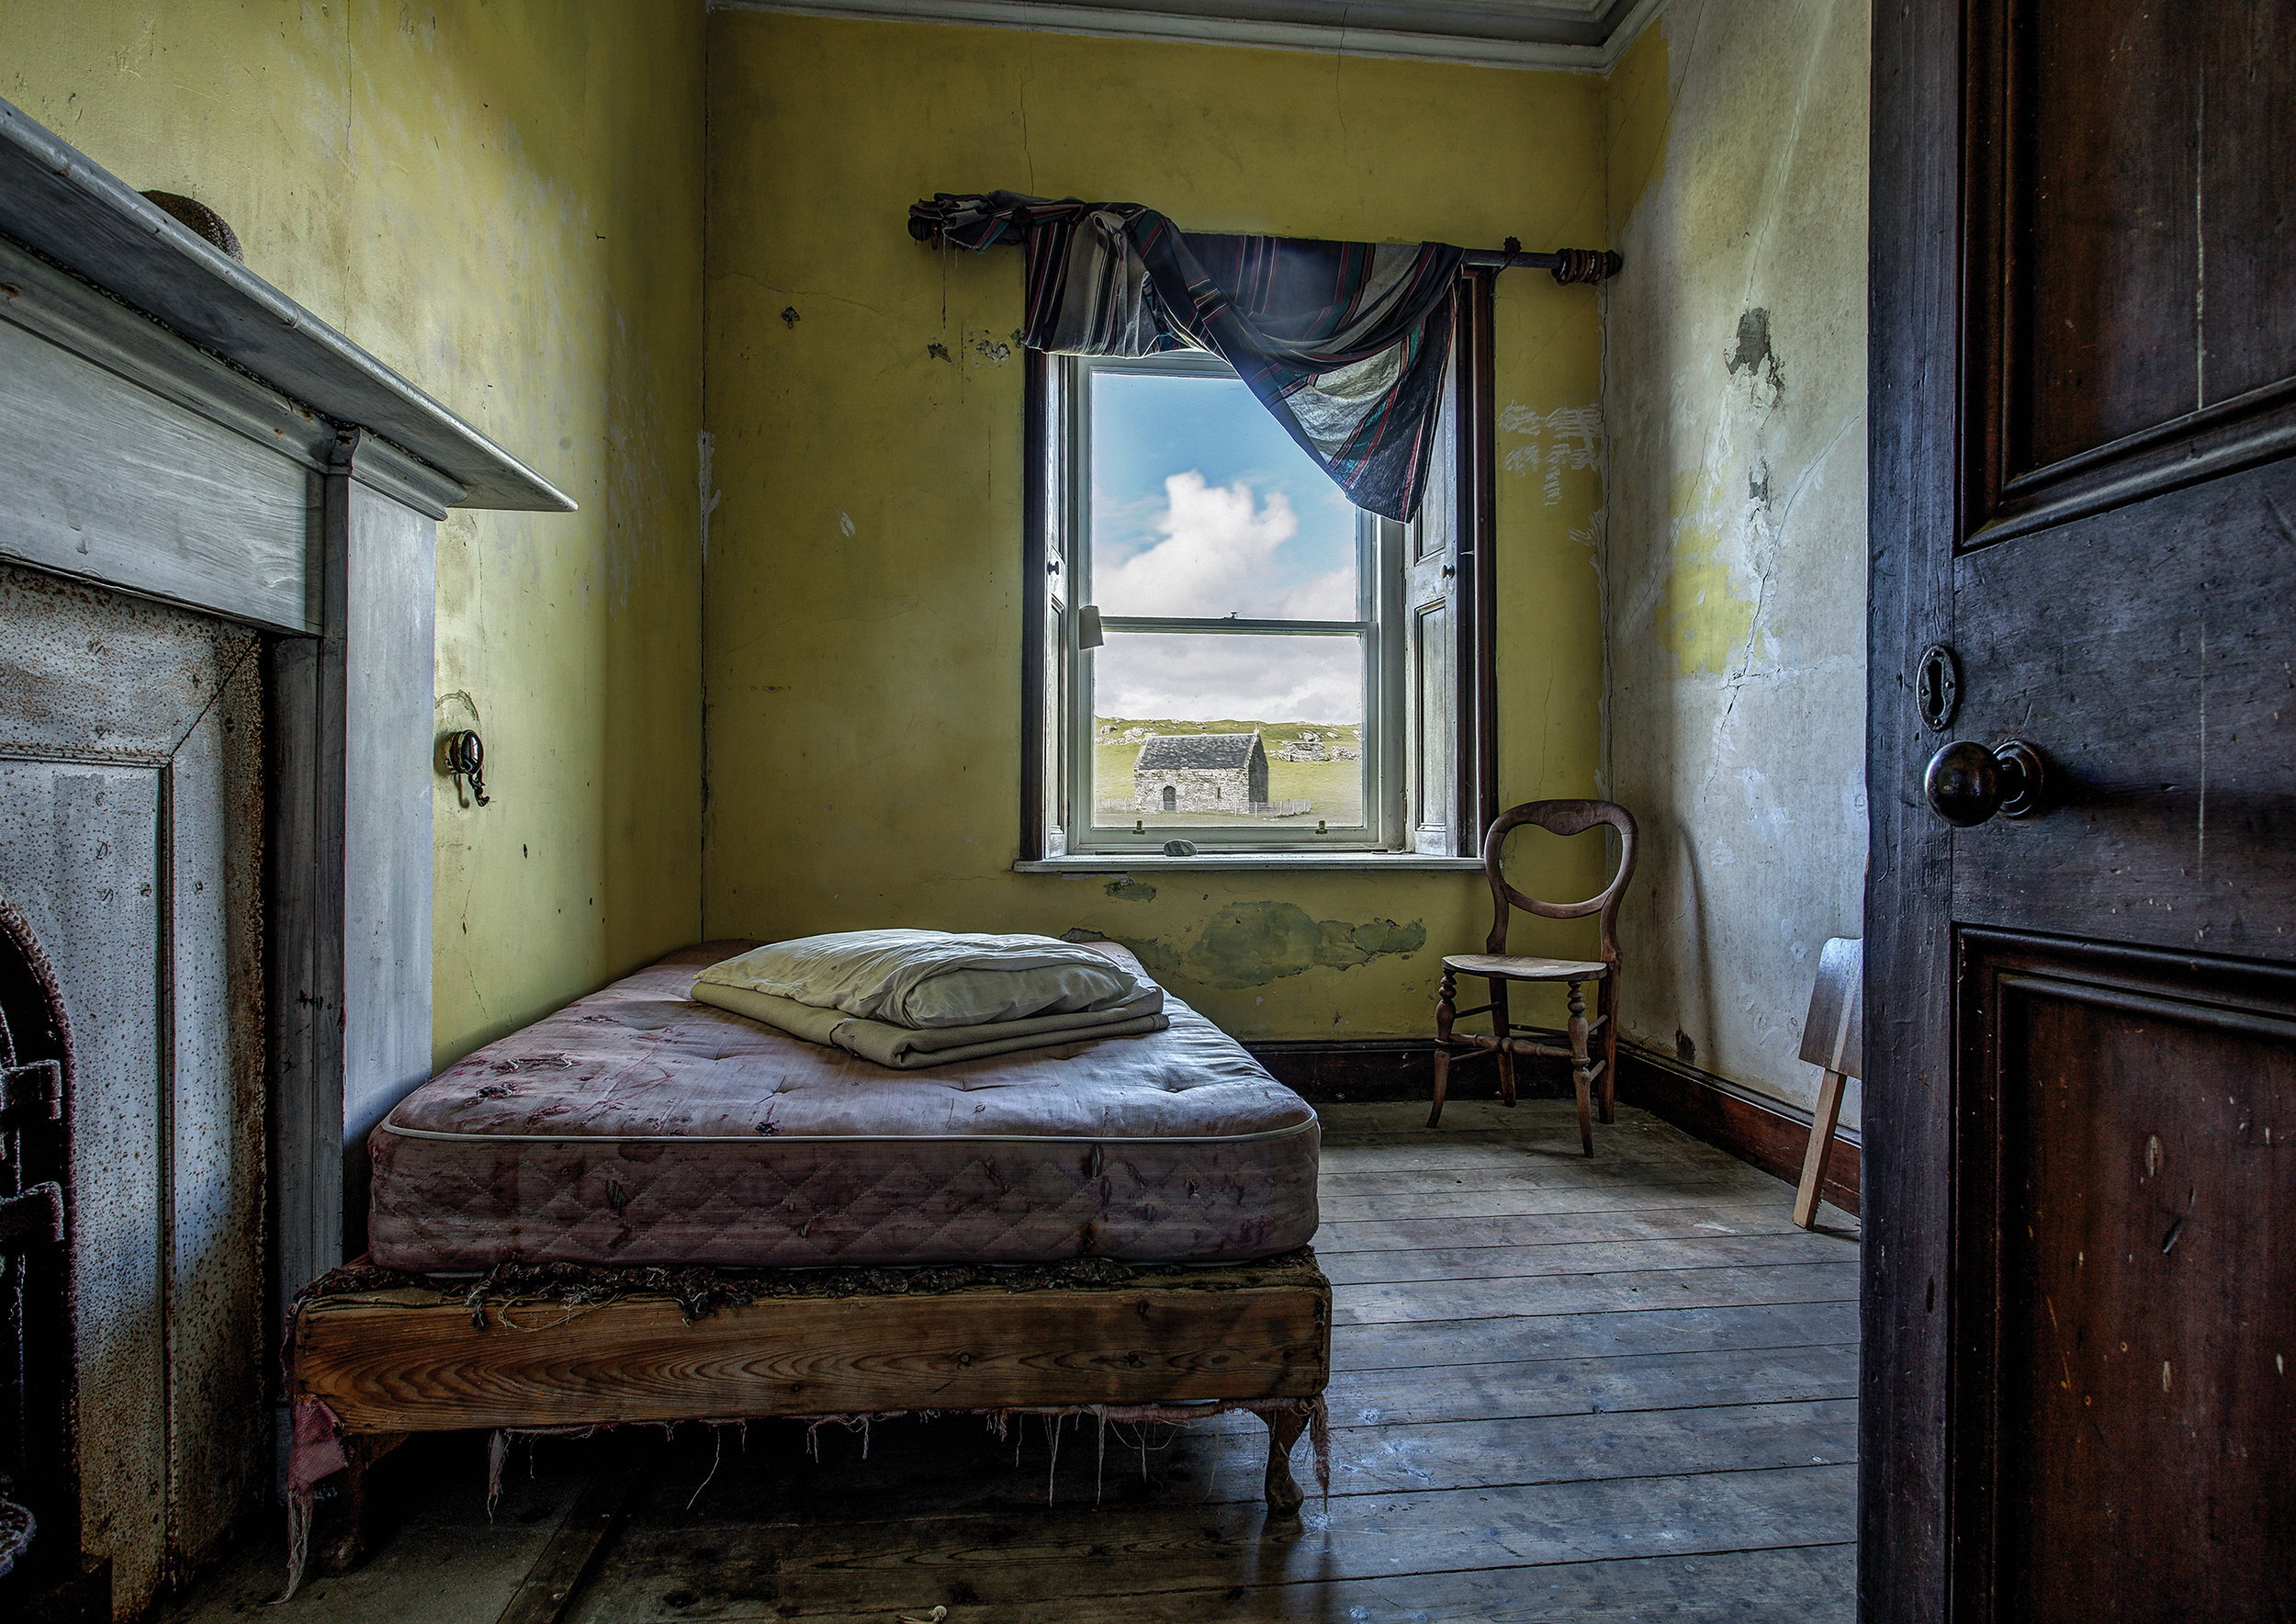 Former Buzzcocks drummer captures beautiful images of abandoned Outer Hebrides homes - Lonely Planet Travel News. Article by James Gabriel Martin. Photographs by John Maher of The Flying Monk